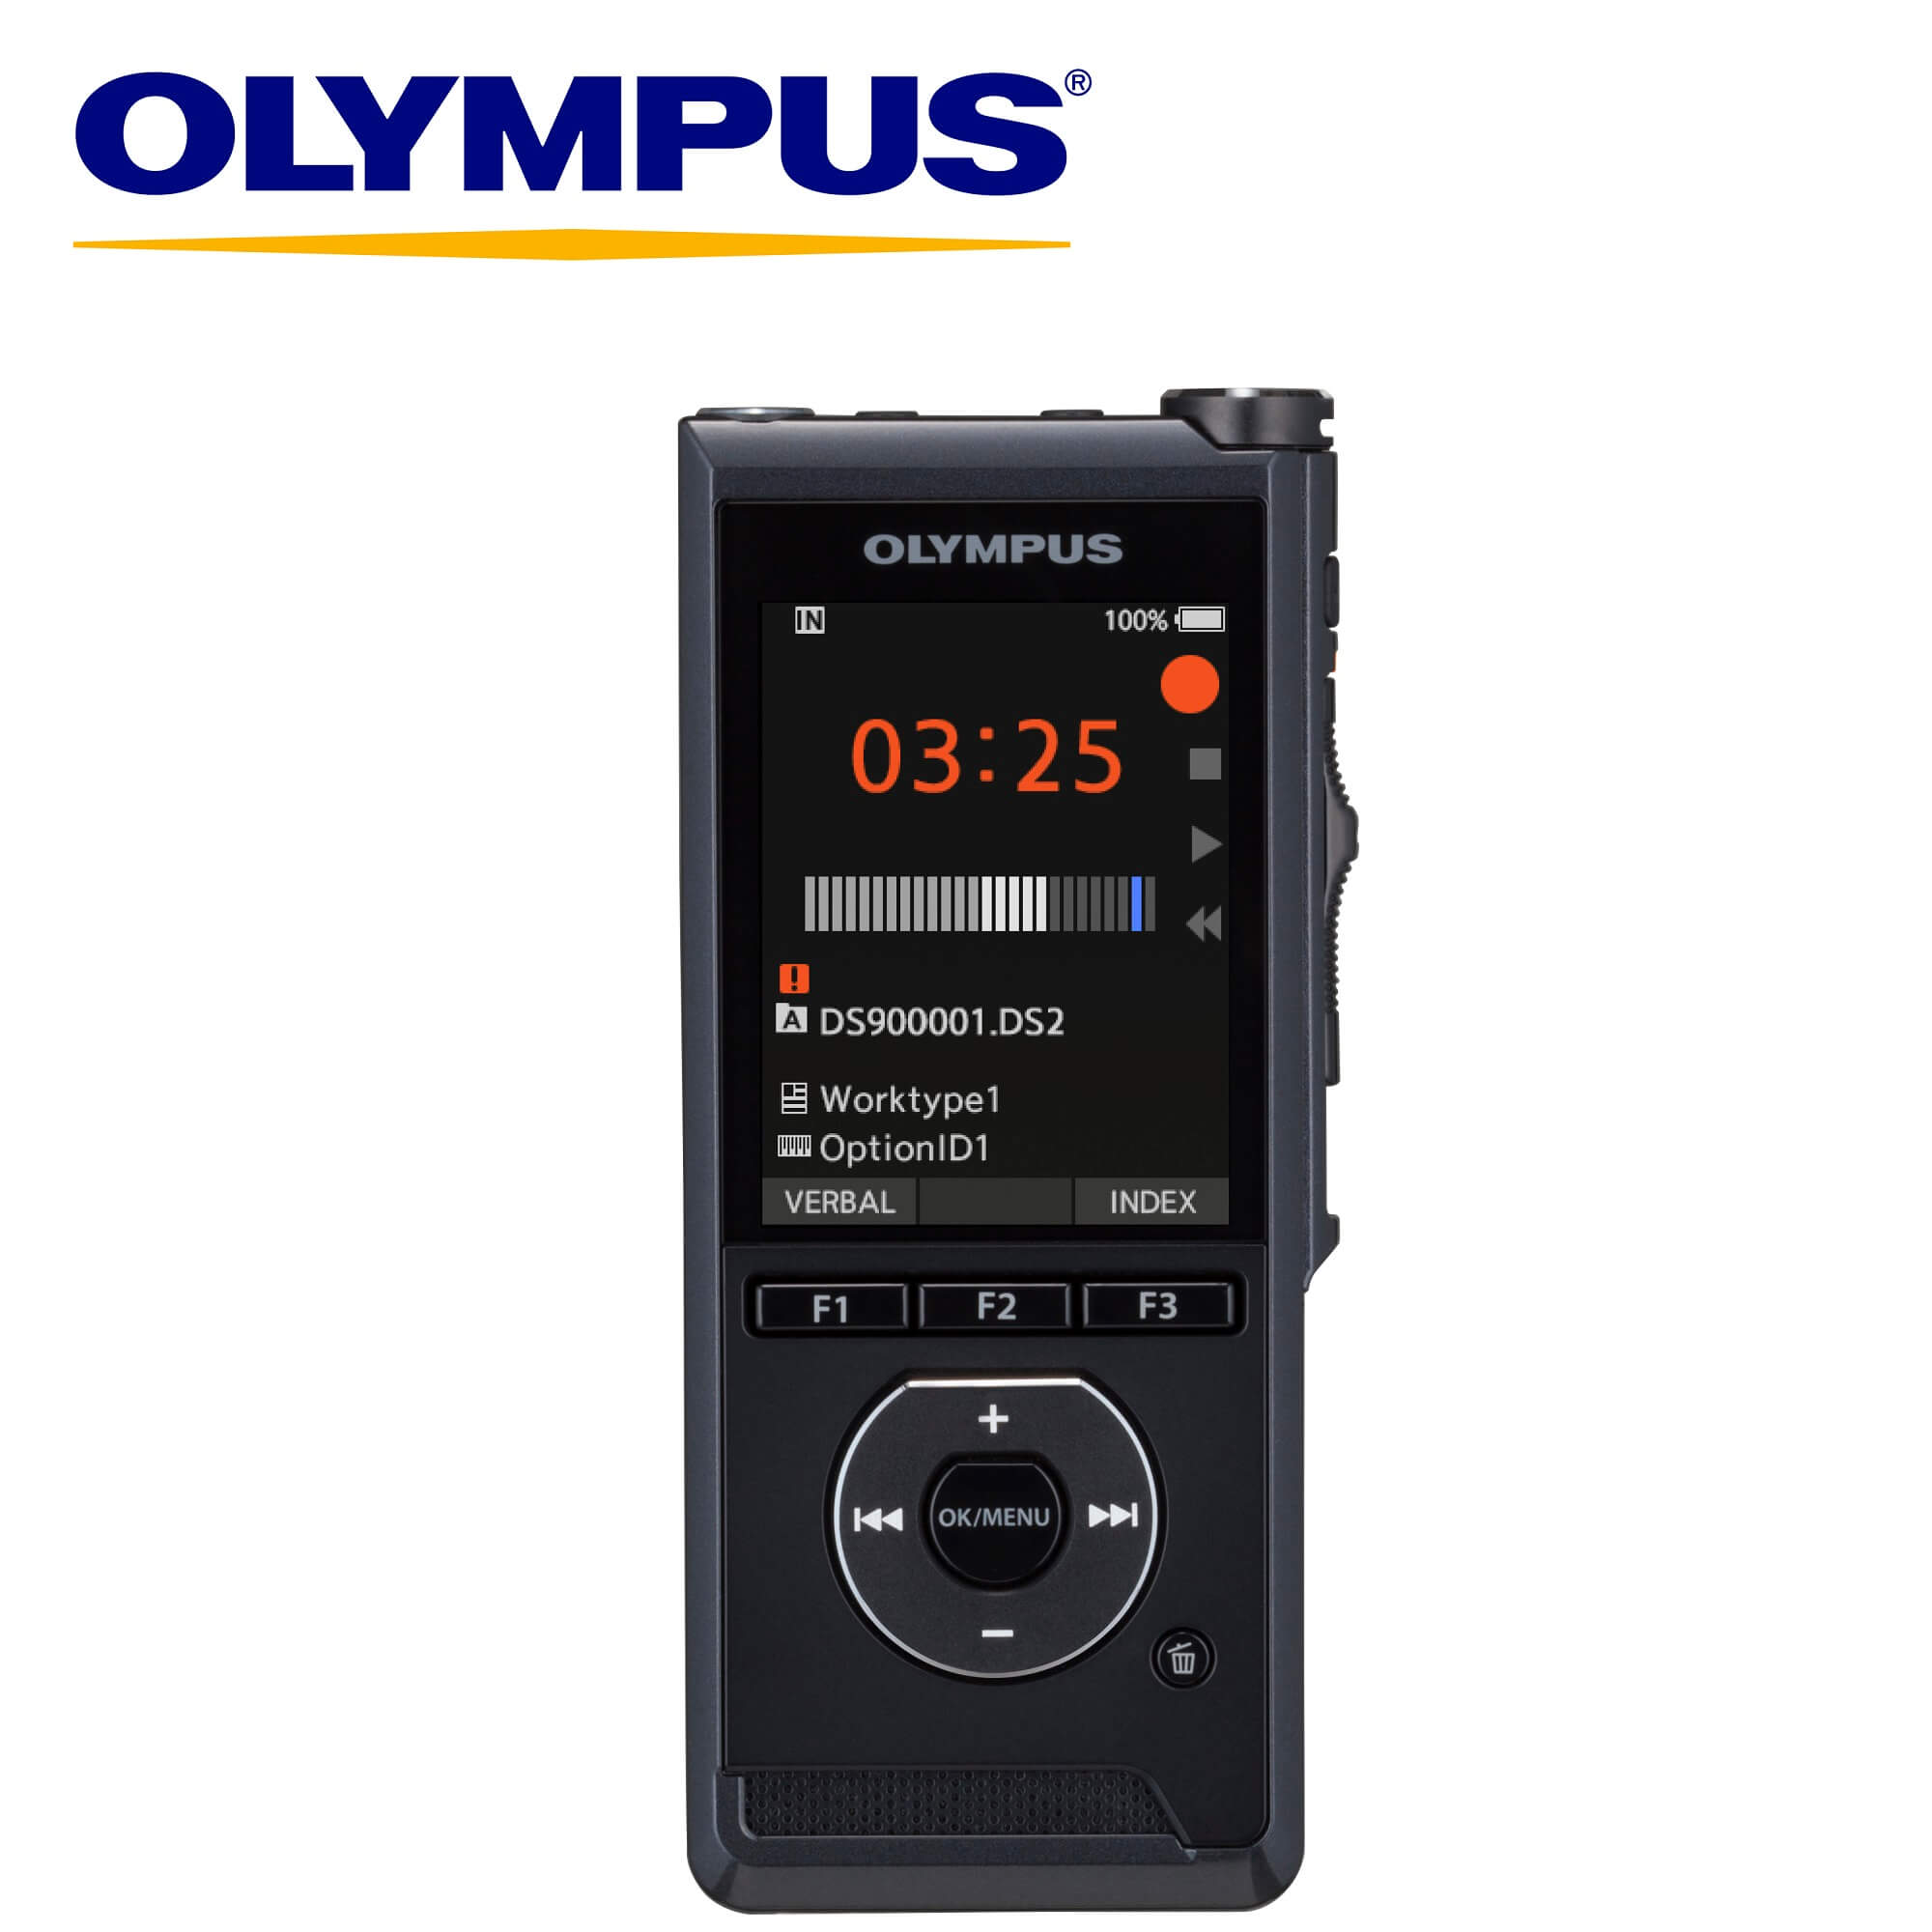 olympus dictation management system r7